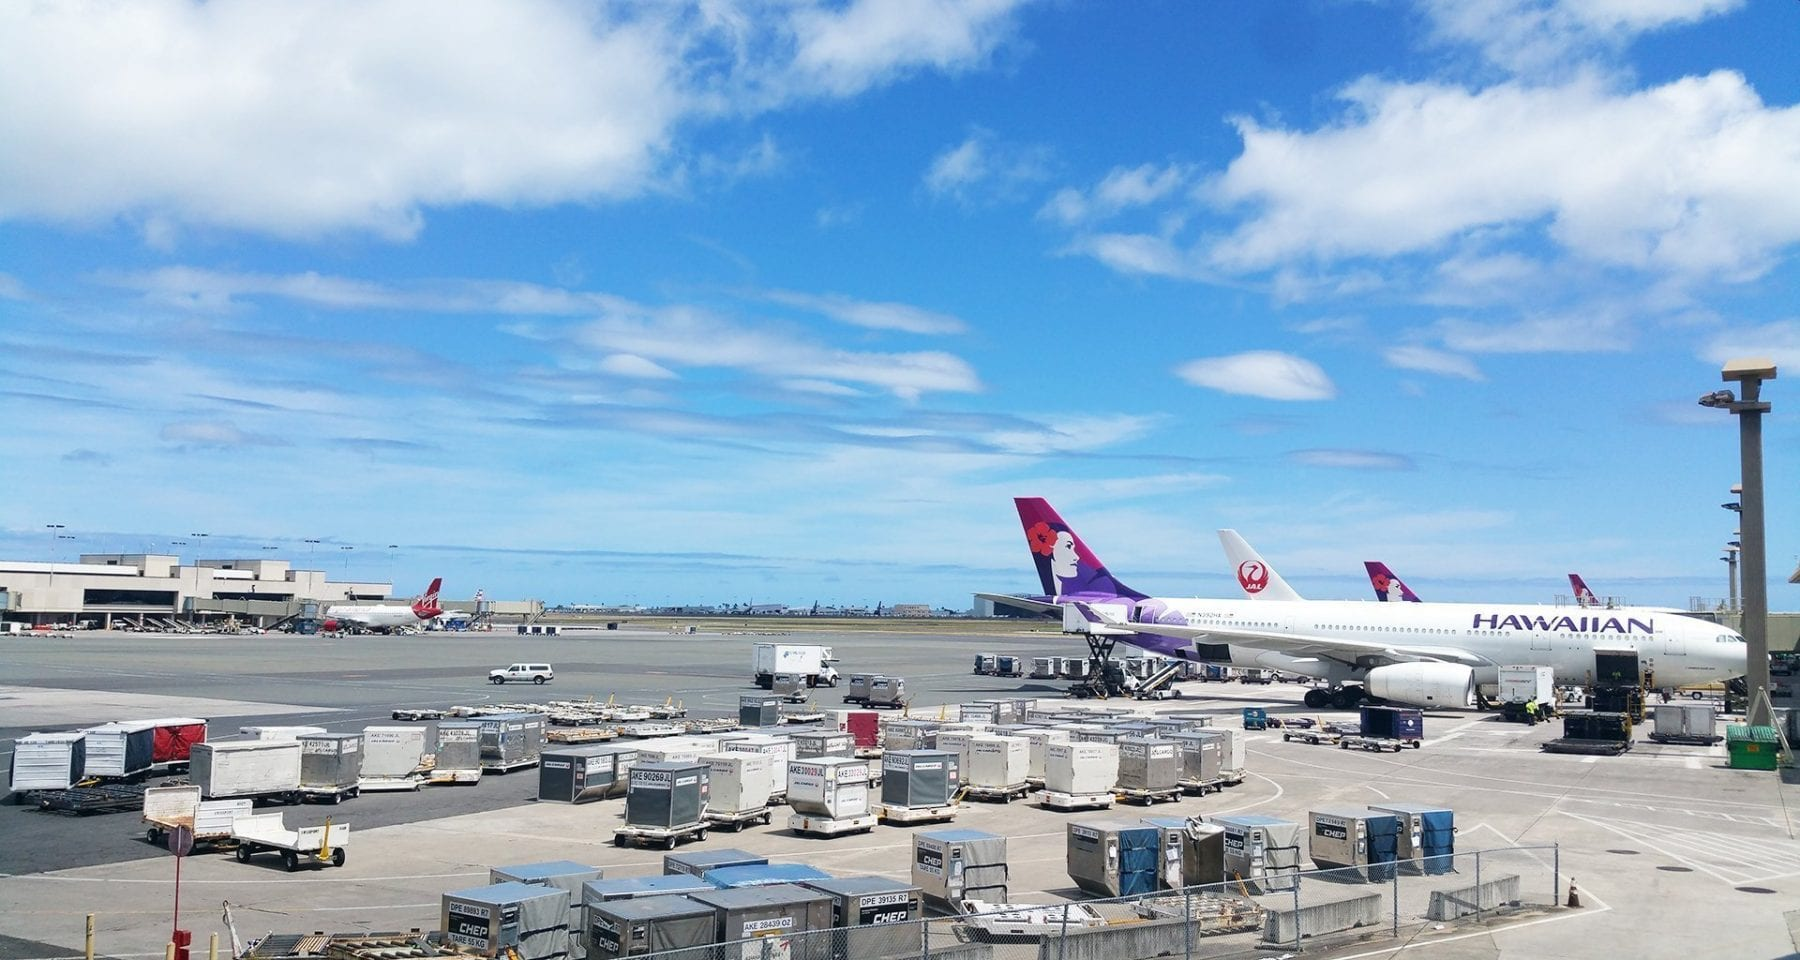 Hawaiian airlines aircraft parked at Honolulu International Airport